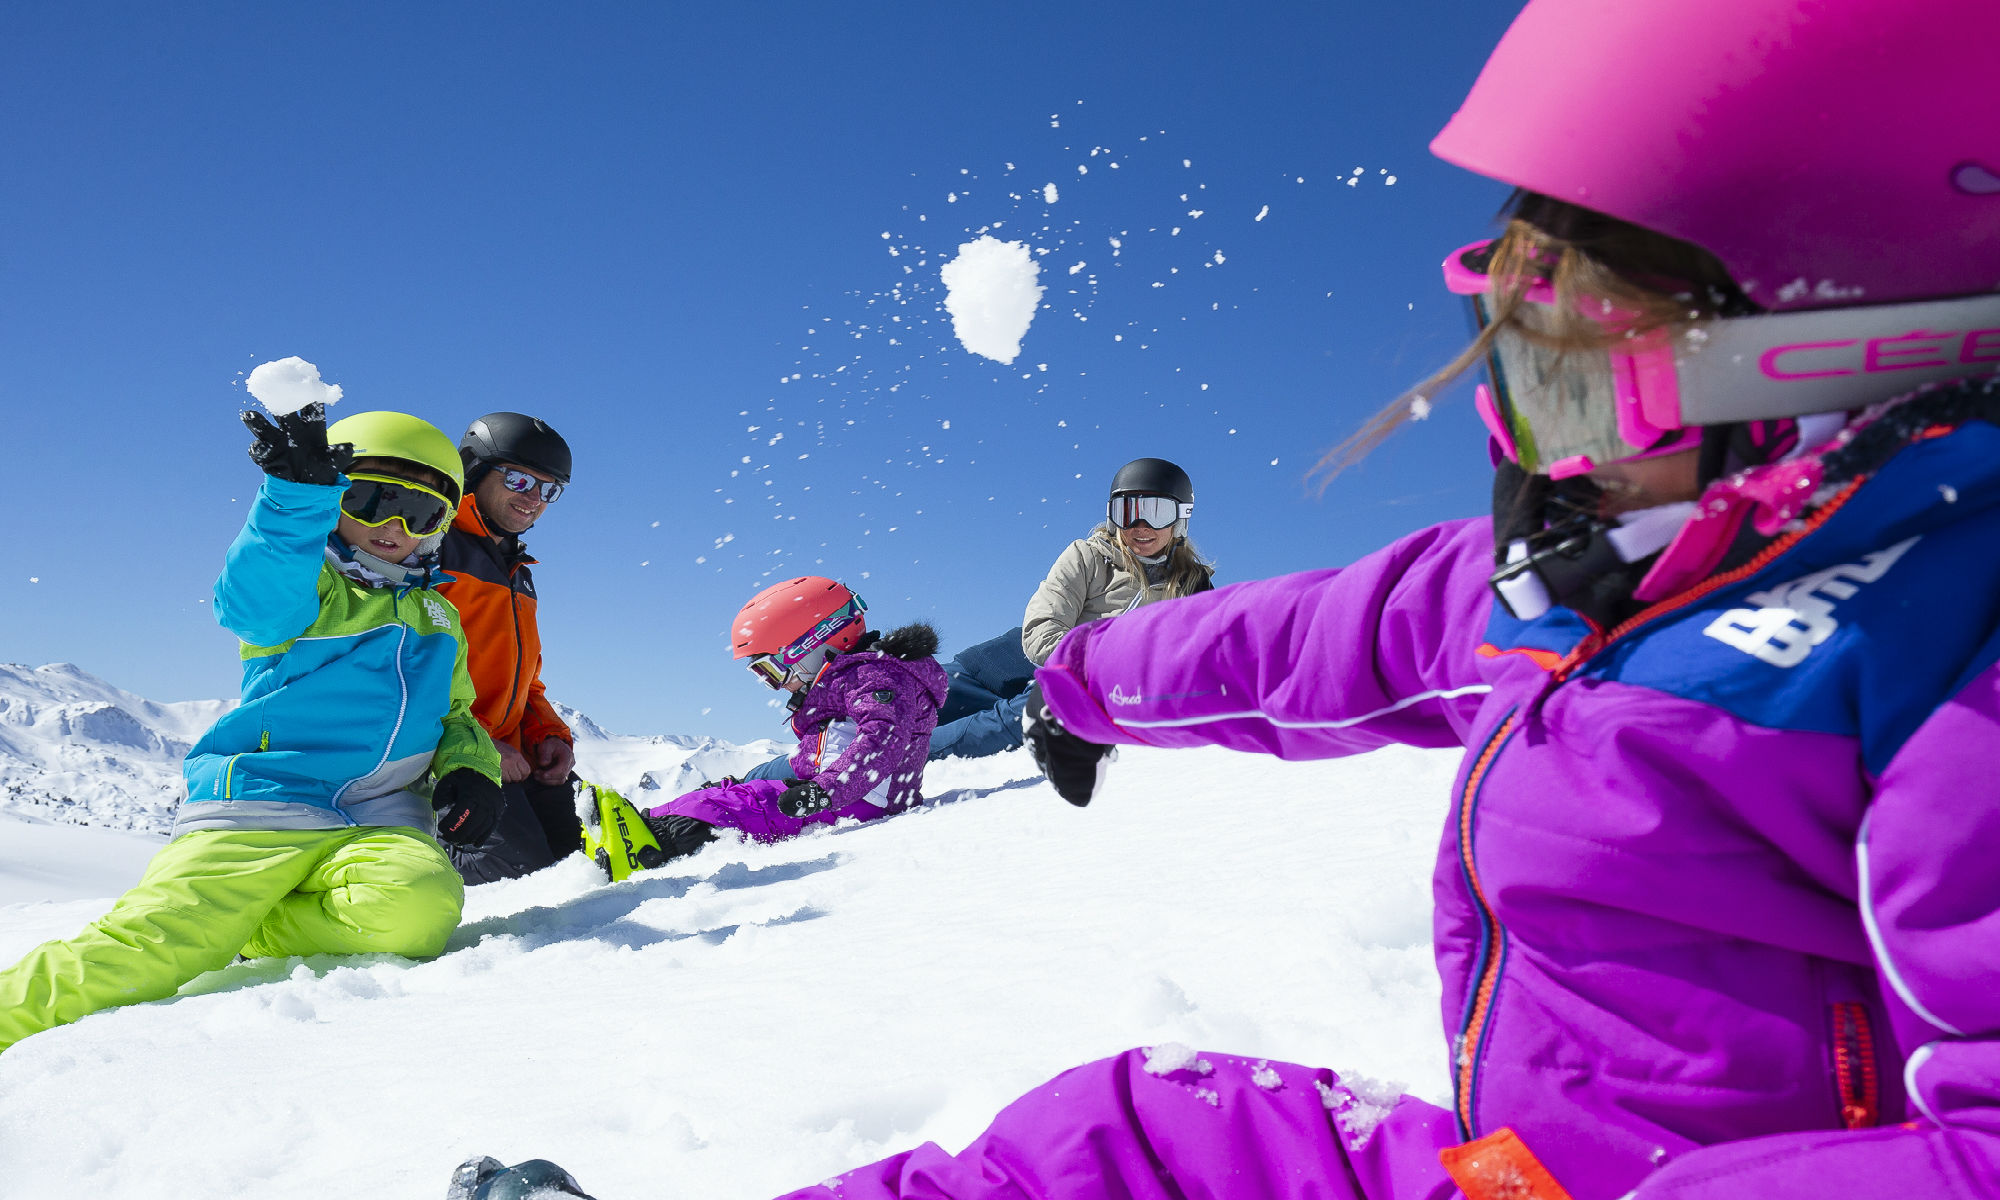 A family having fun at the La Plagne funslope